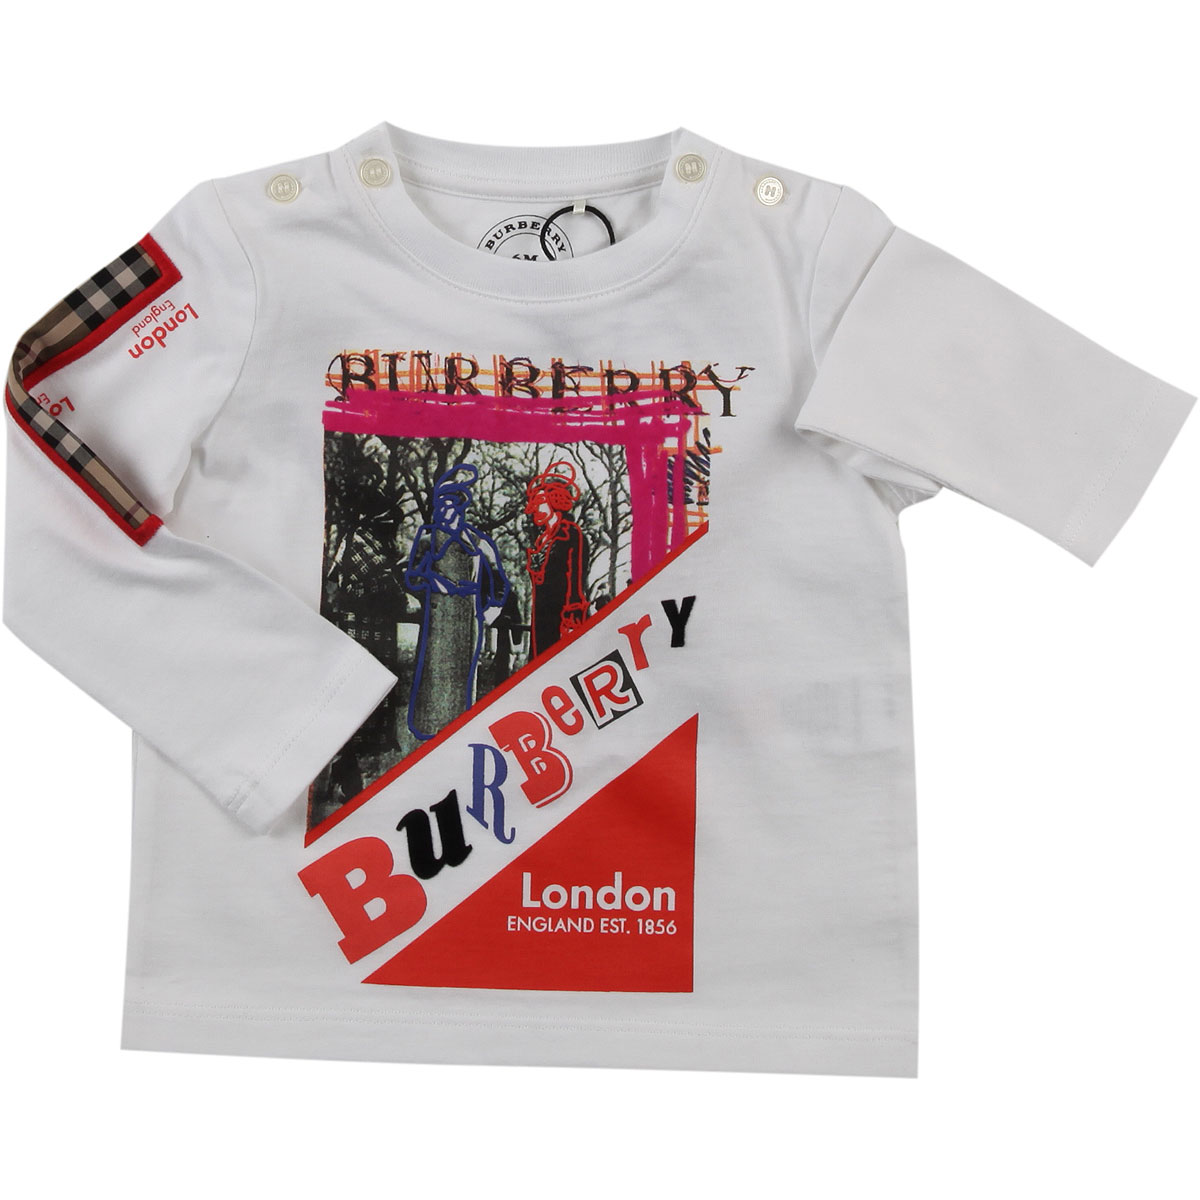 Image of Burberry Baby T-Shirt for Girls, White, Cotton, 2017, 12M 18M 2Y 3Y 6M